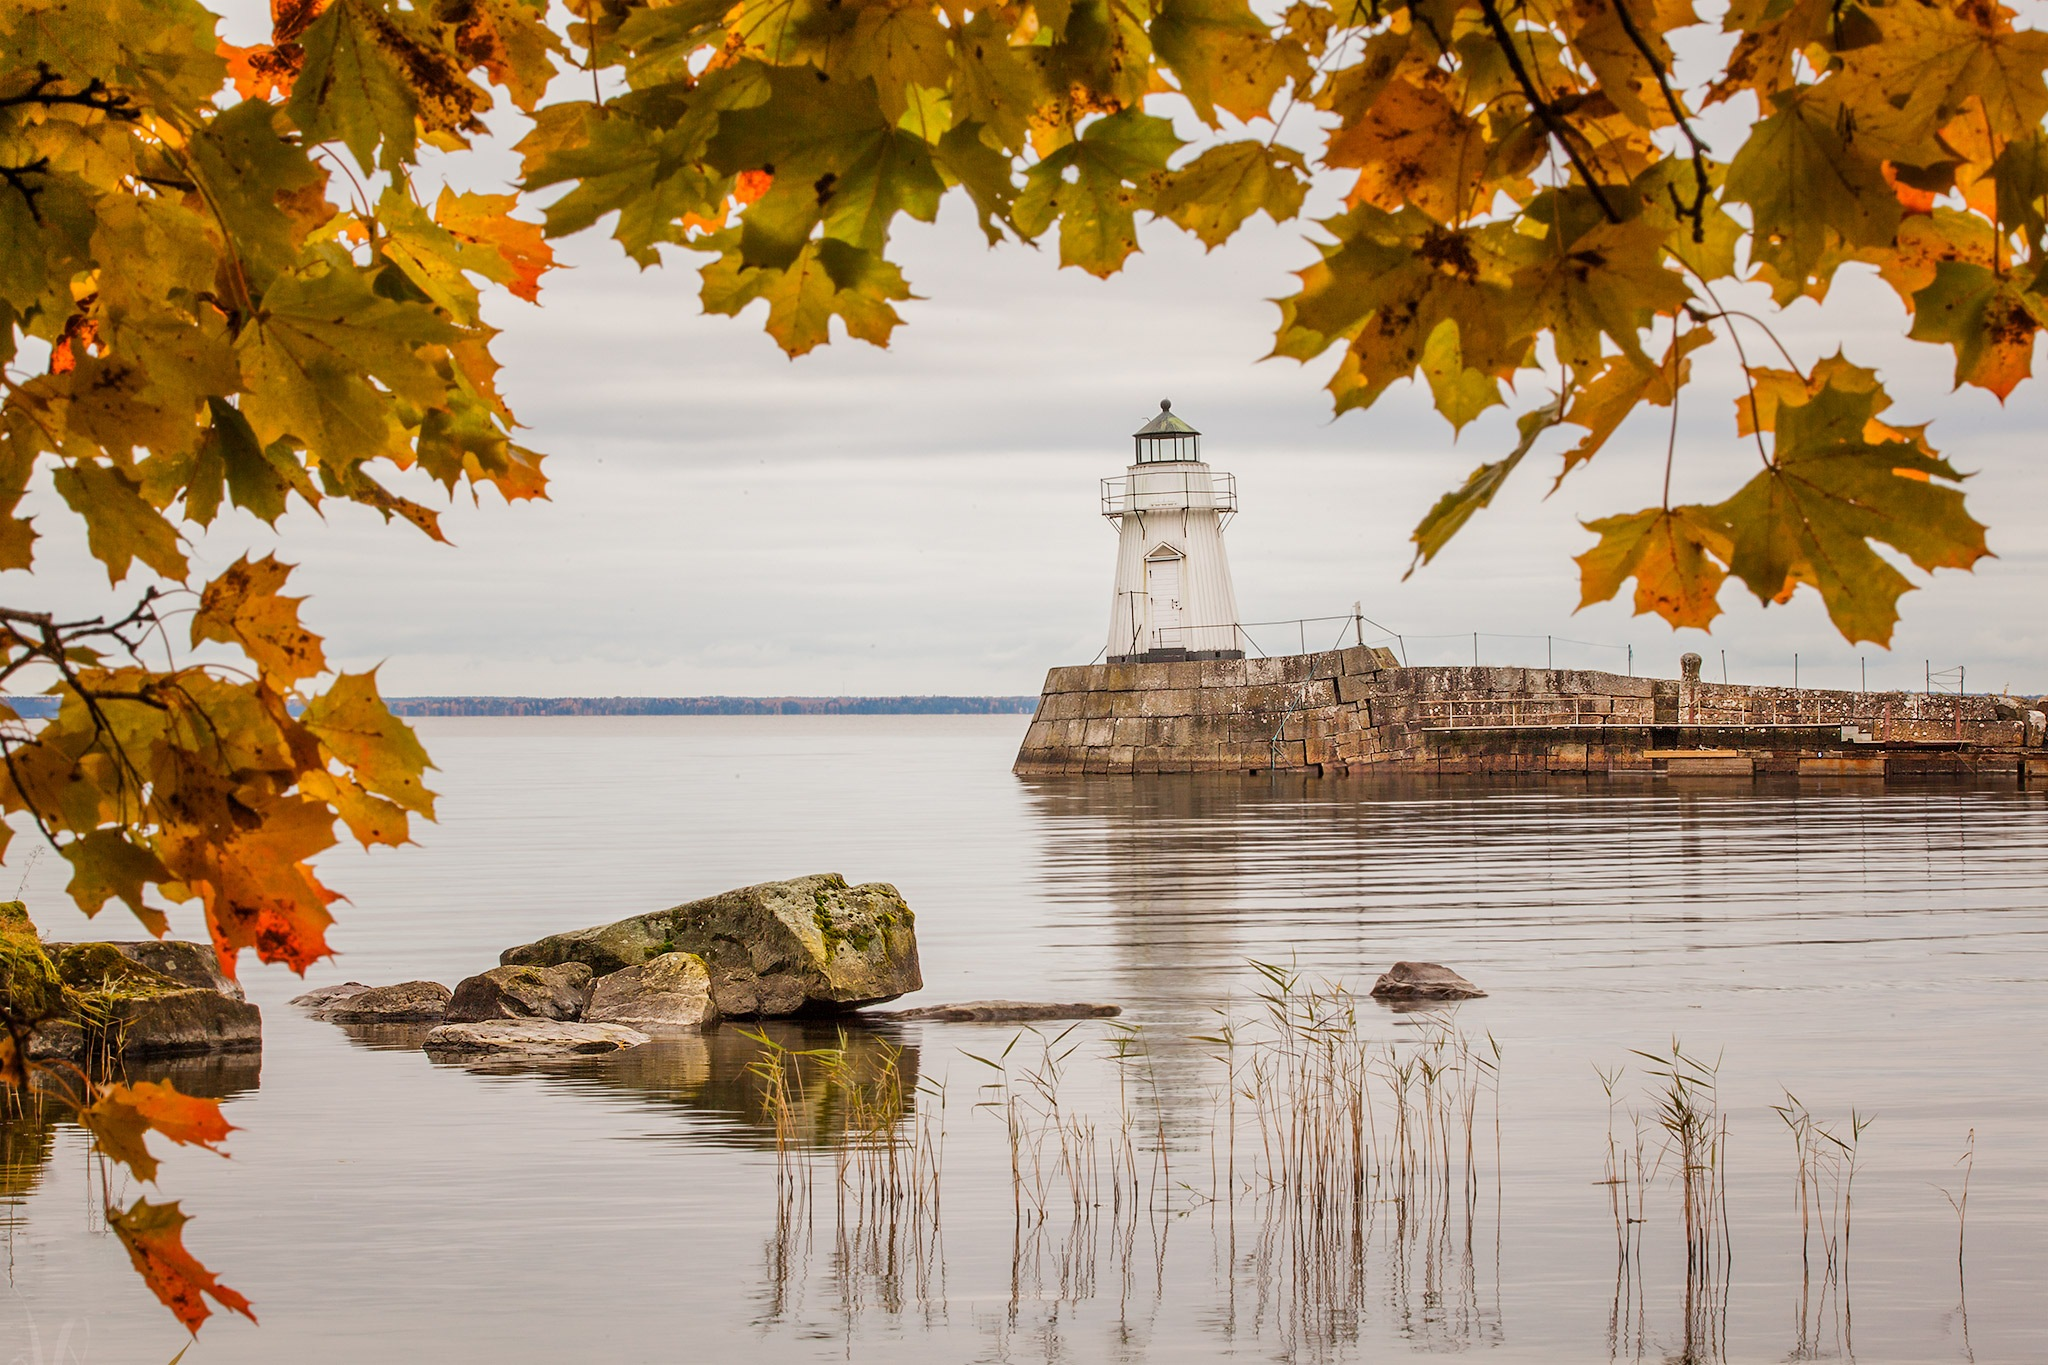 Autumn at the old lighthouse by Canonmats